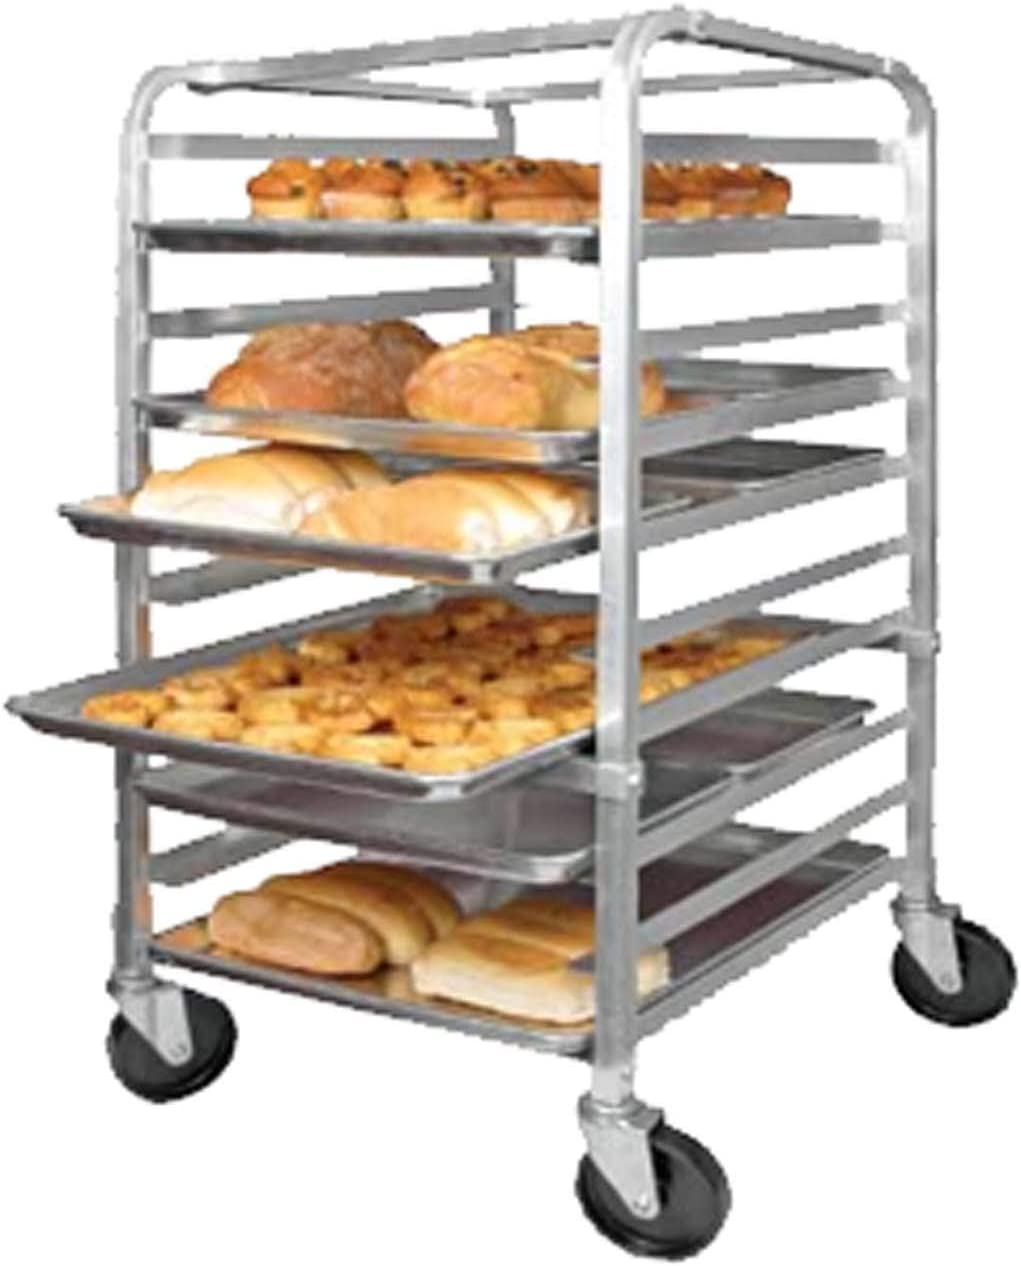 Winco ALRK-10 Aluminum 10 Full Size Pan Rack